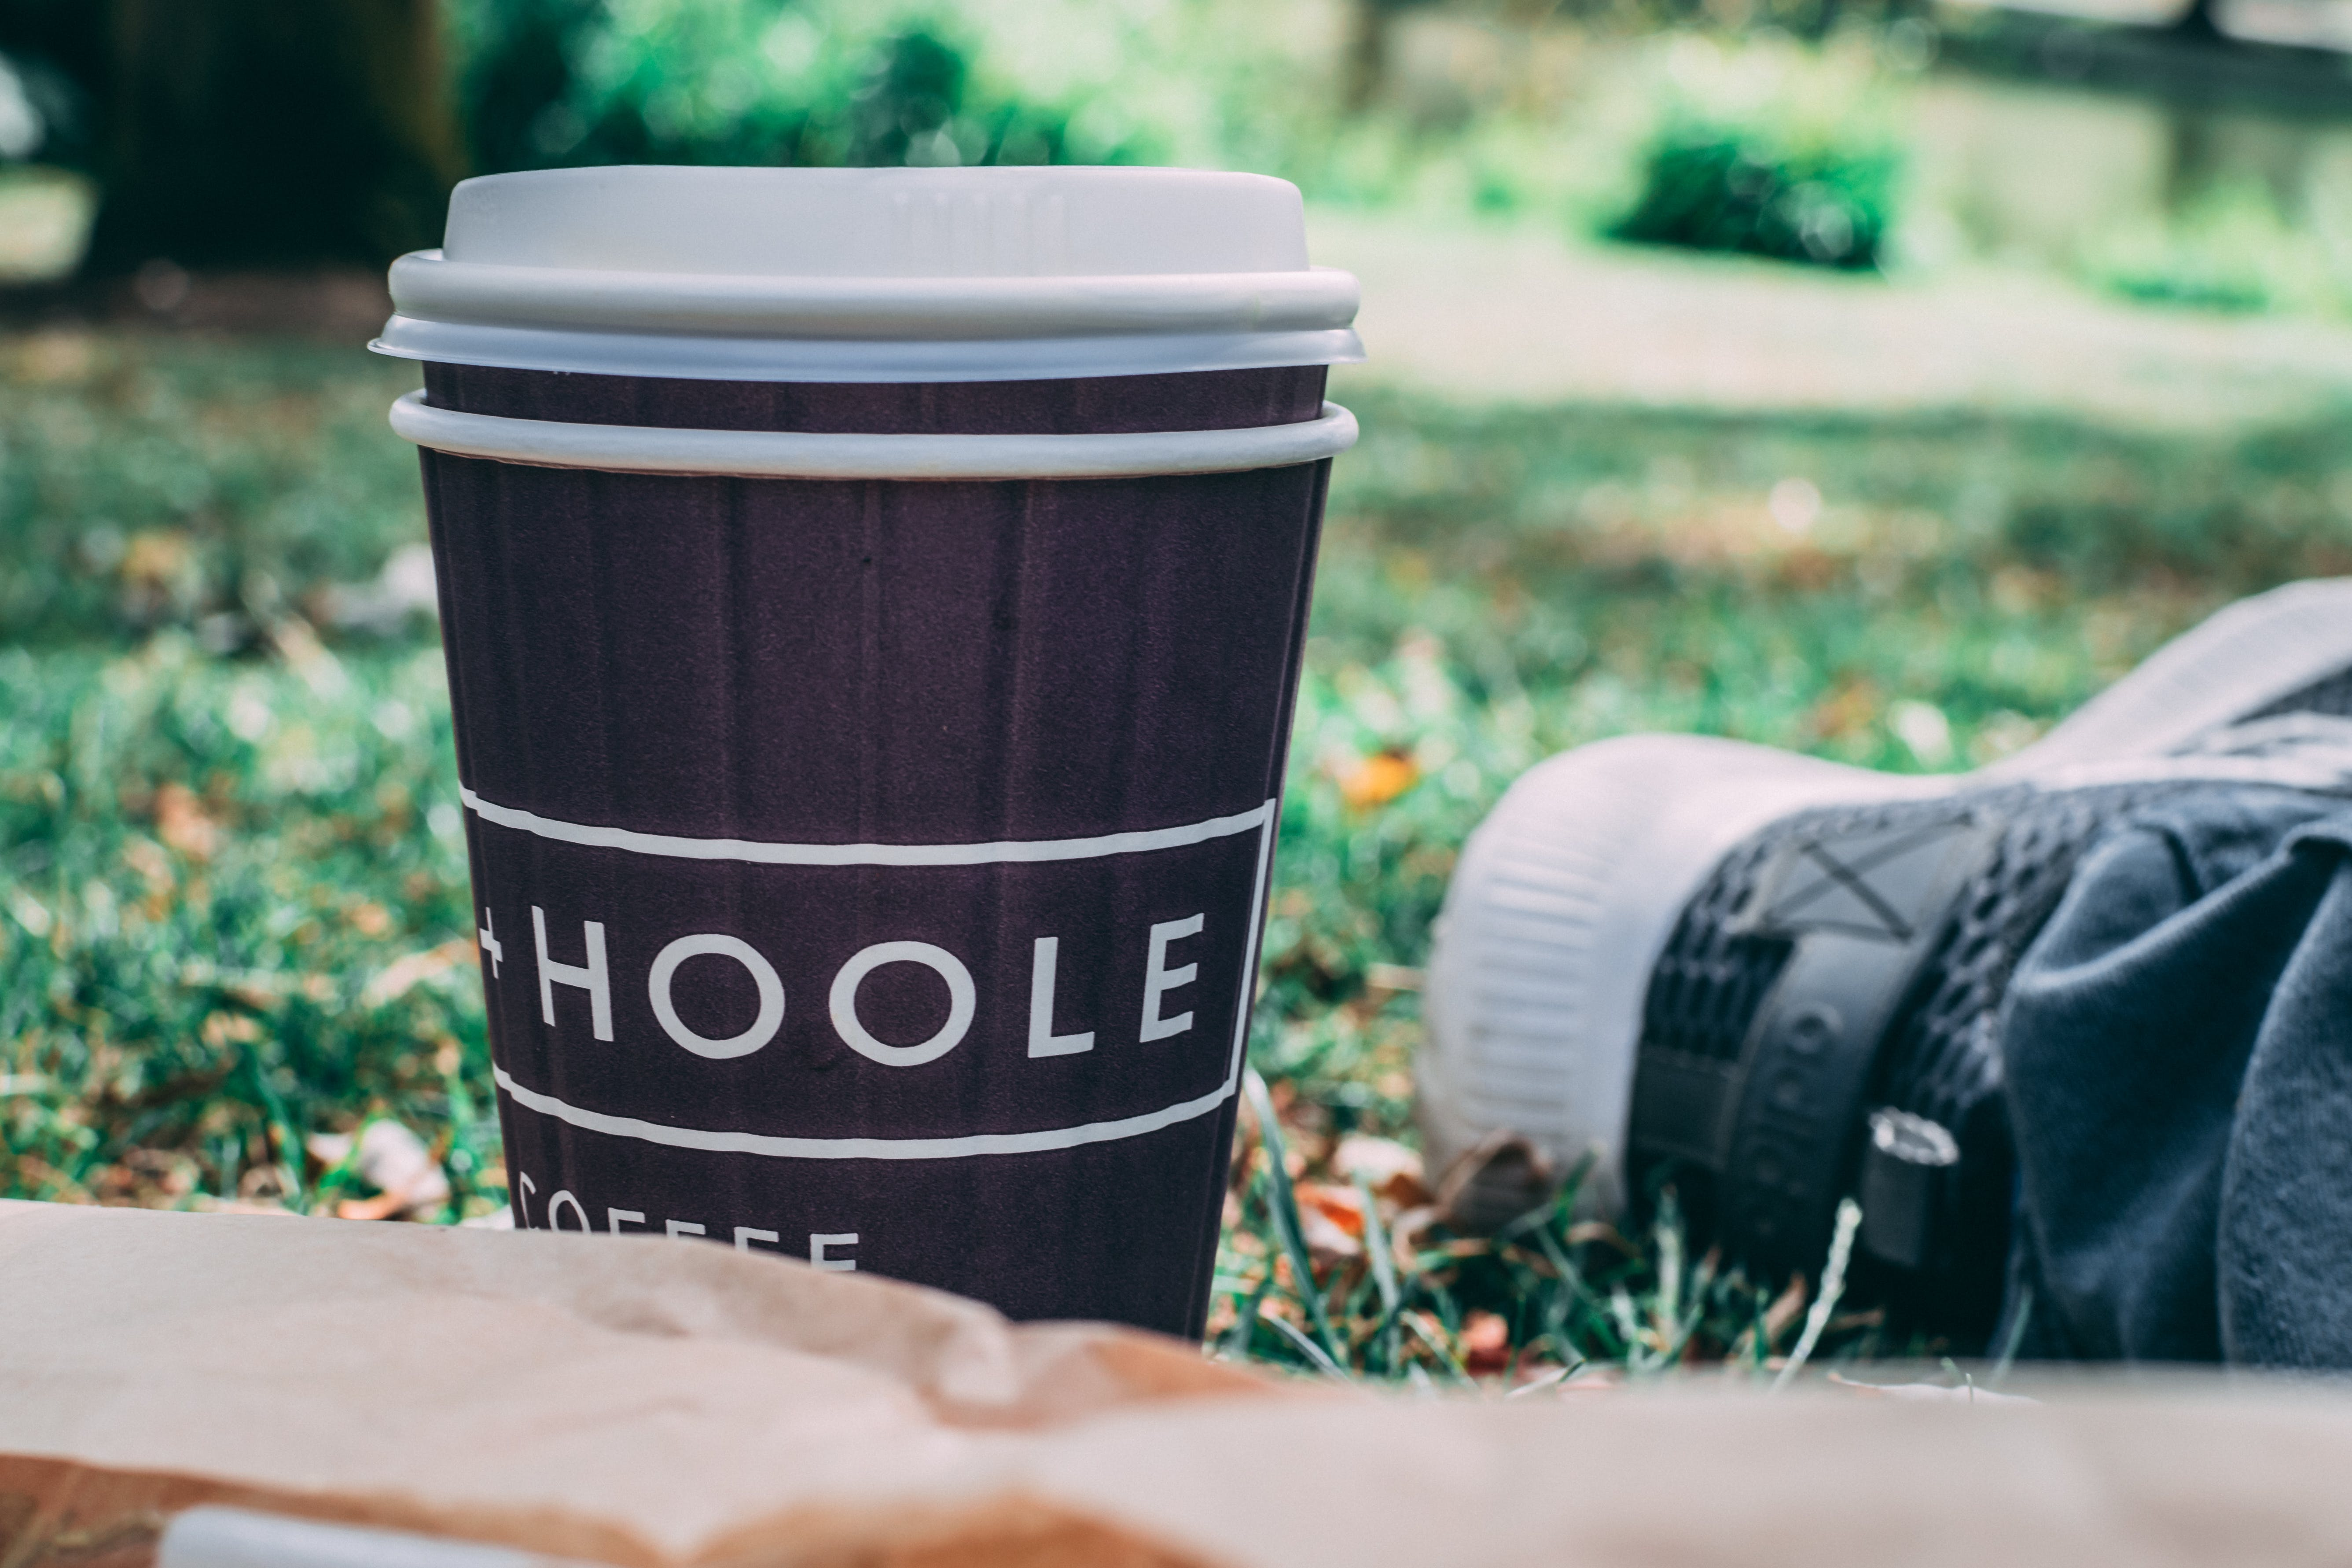 Black and White Coffee Cup on Green Grass